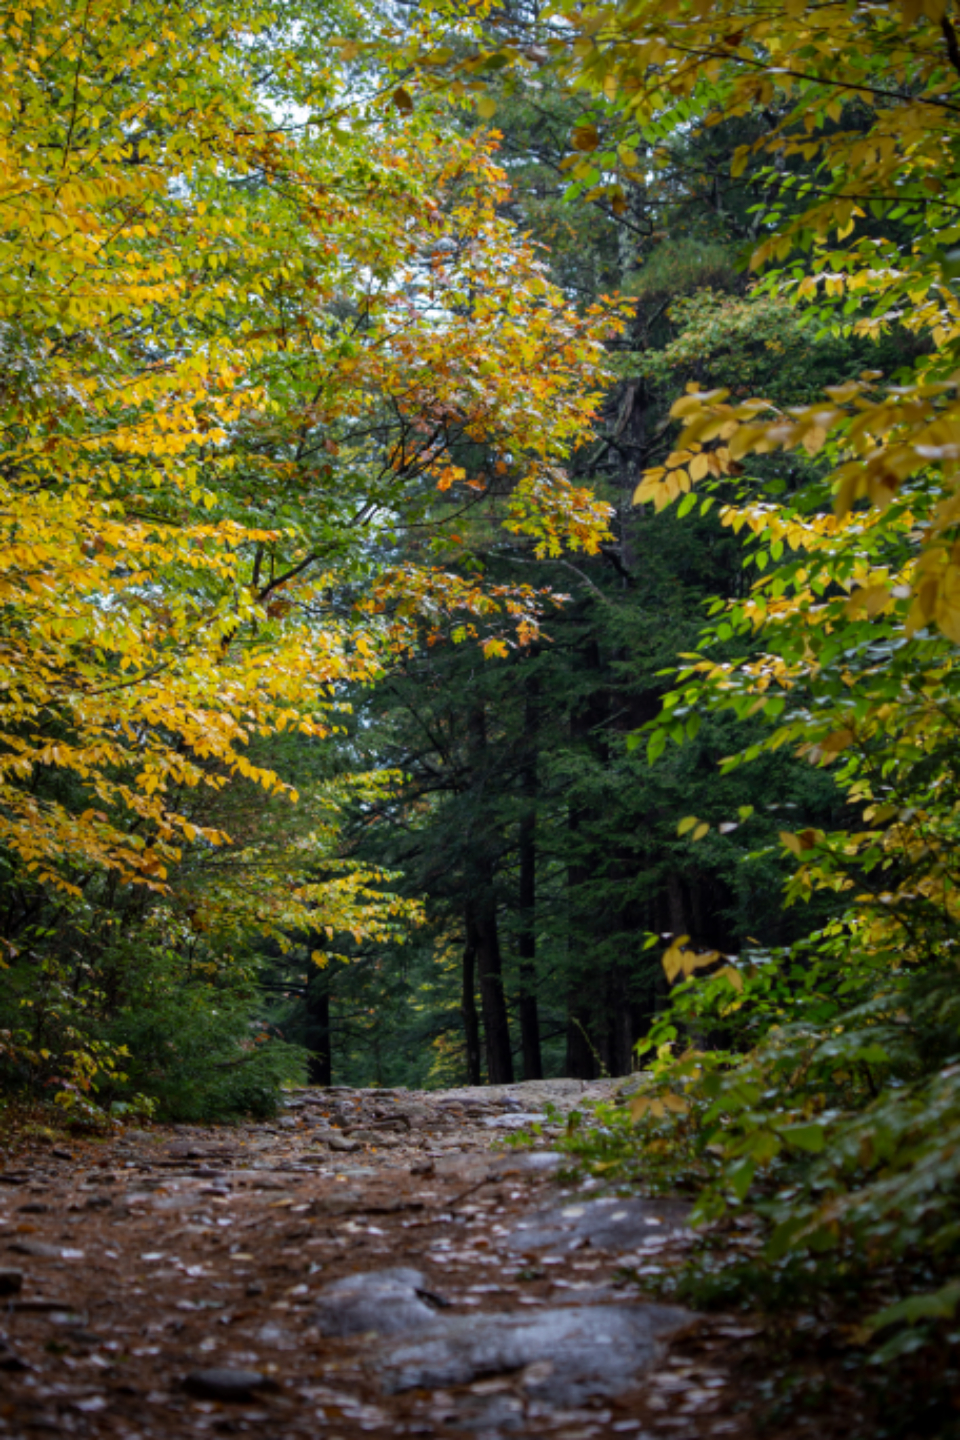 autumn woods nature forest hike trees fall foliage colorful path peaceful adventure outdoors leaves